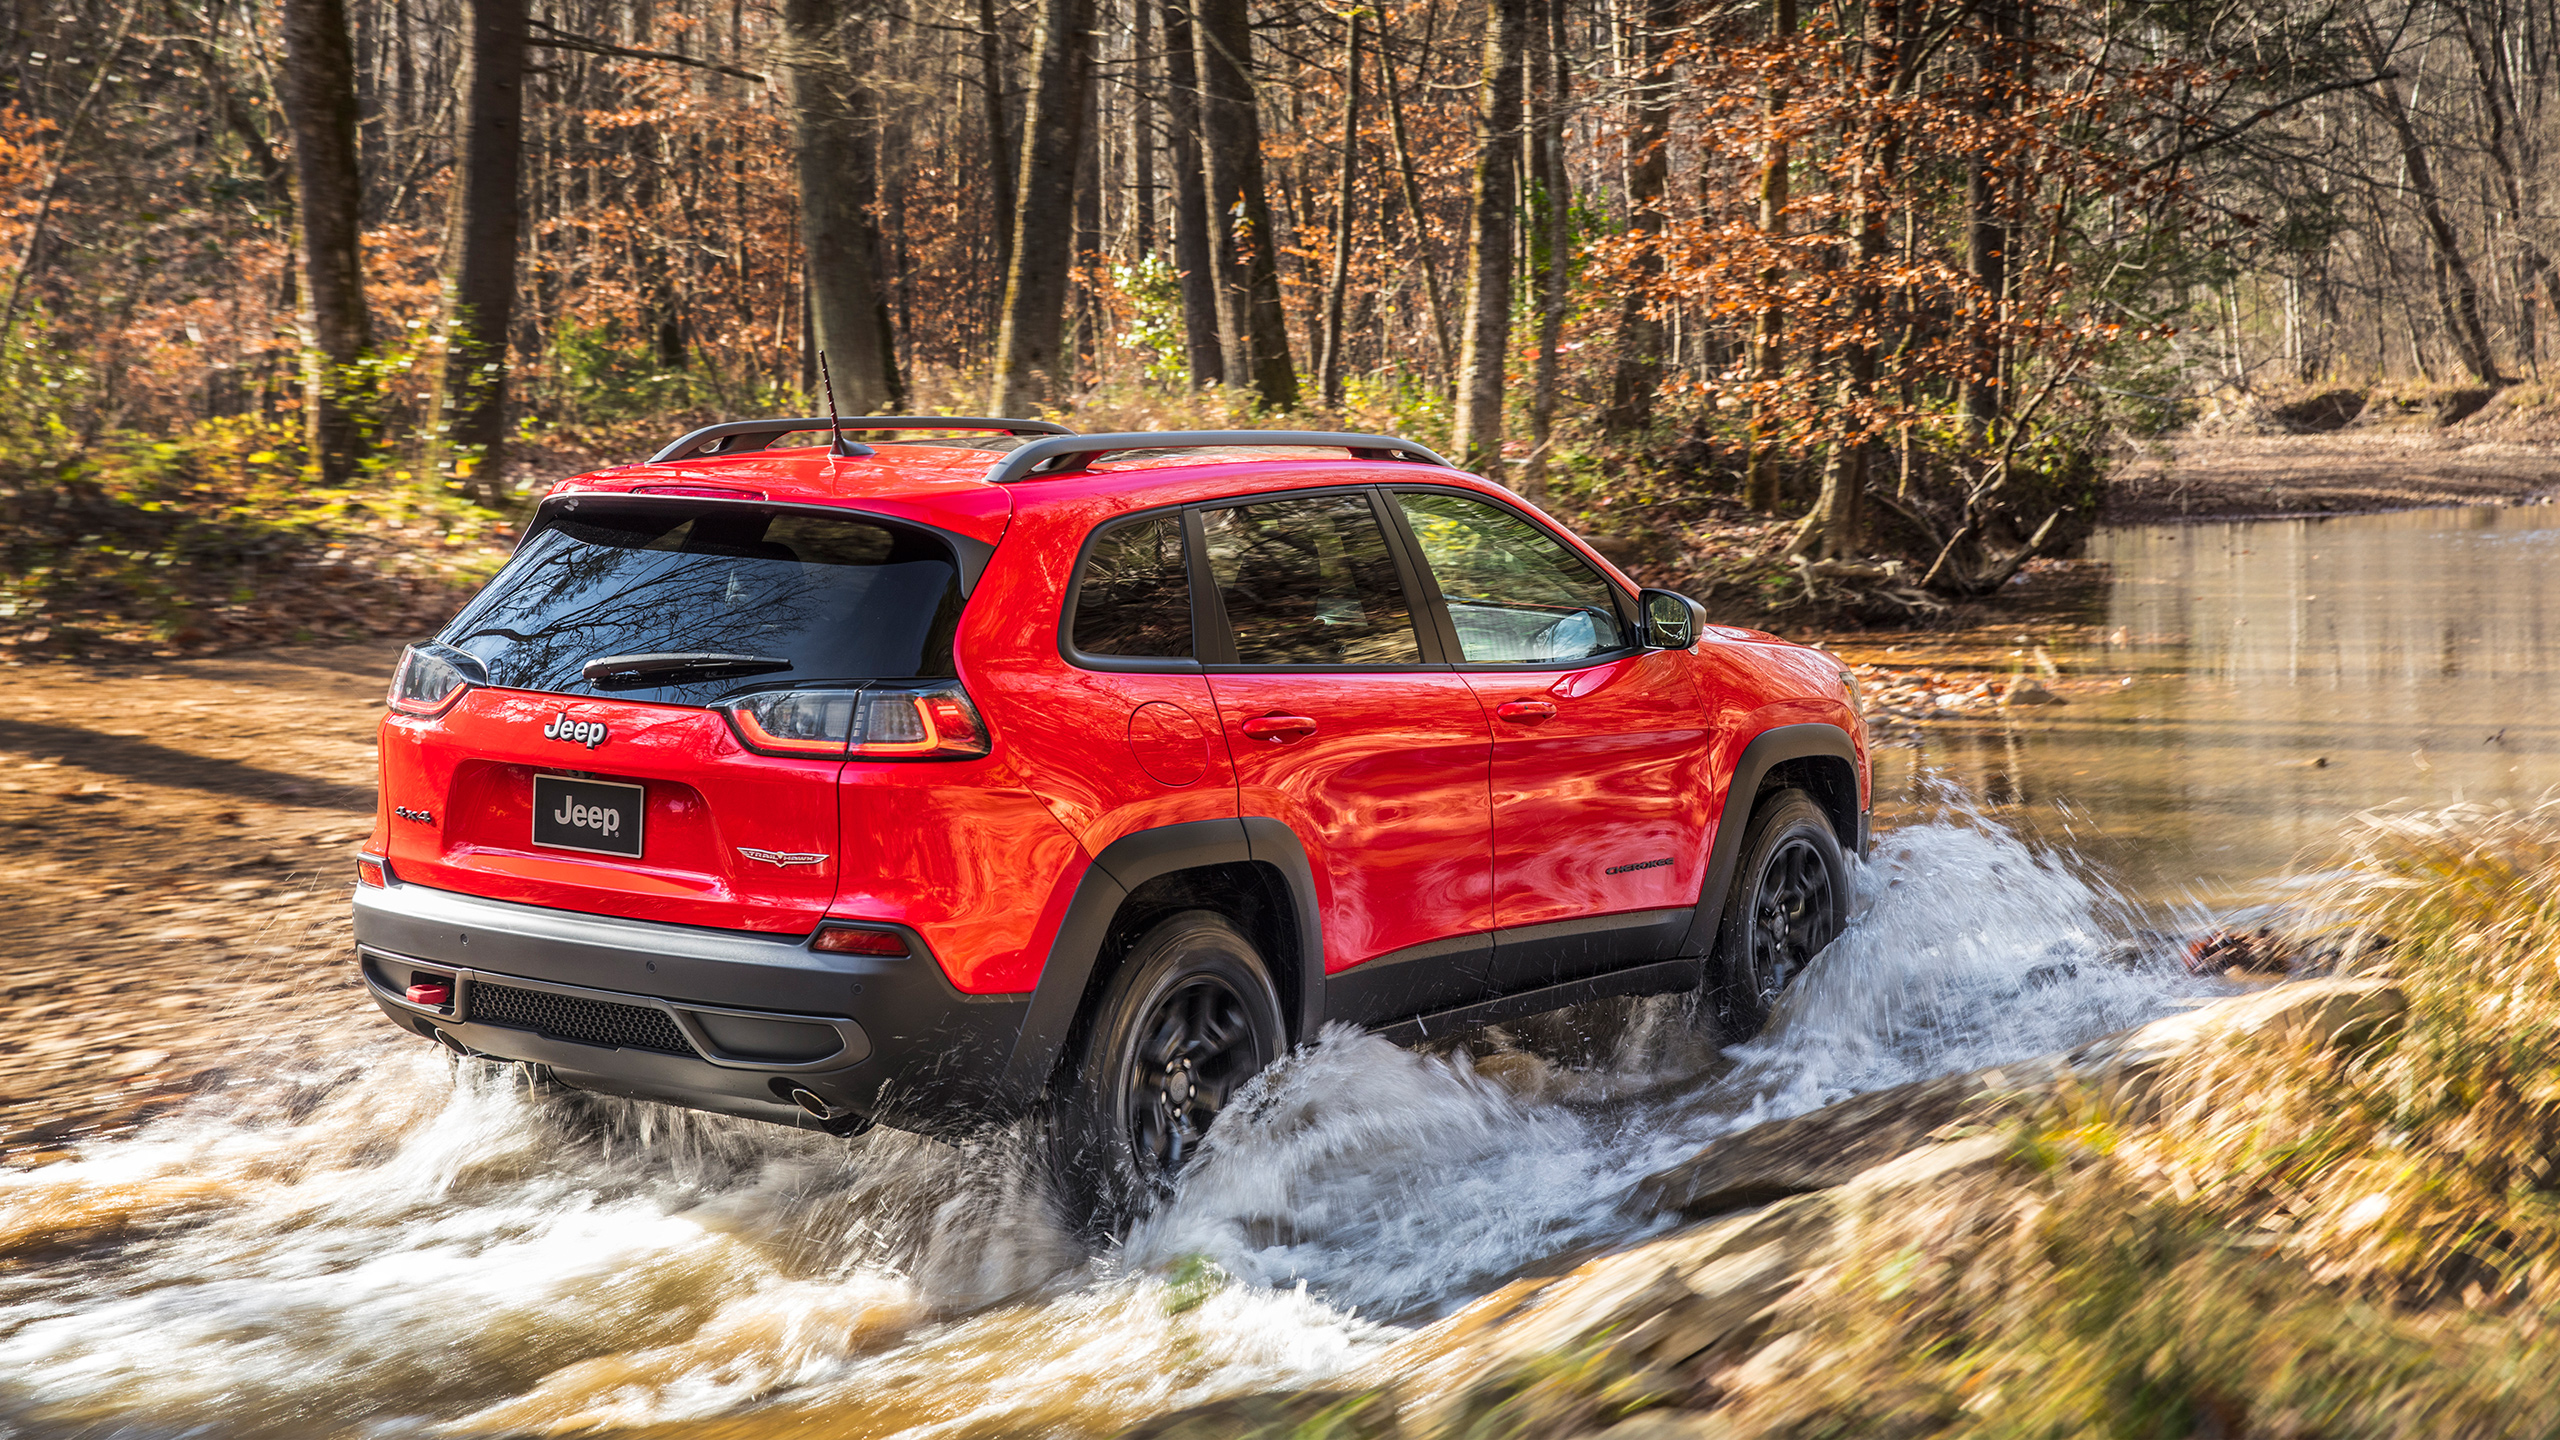 2019 Jeep Cherokee Trailhawk 4 Wallpaper HD Car Wallpapers ID 2560x1440